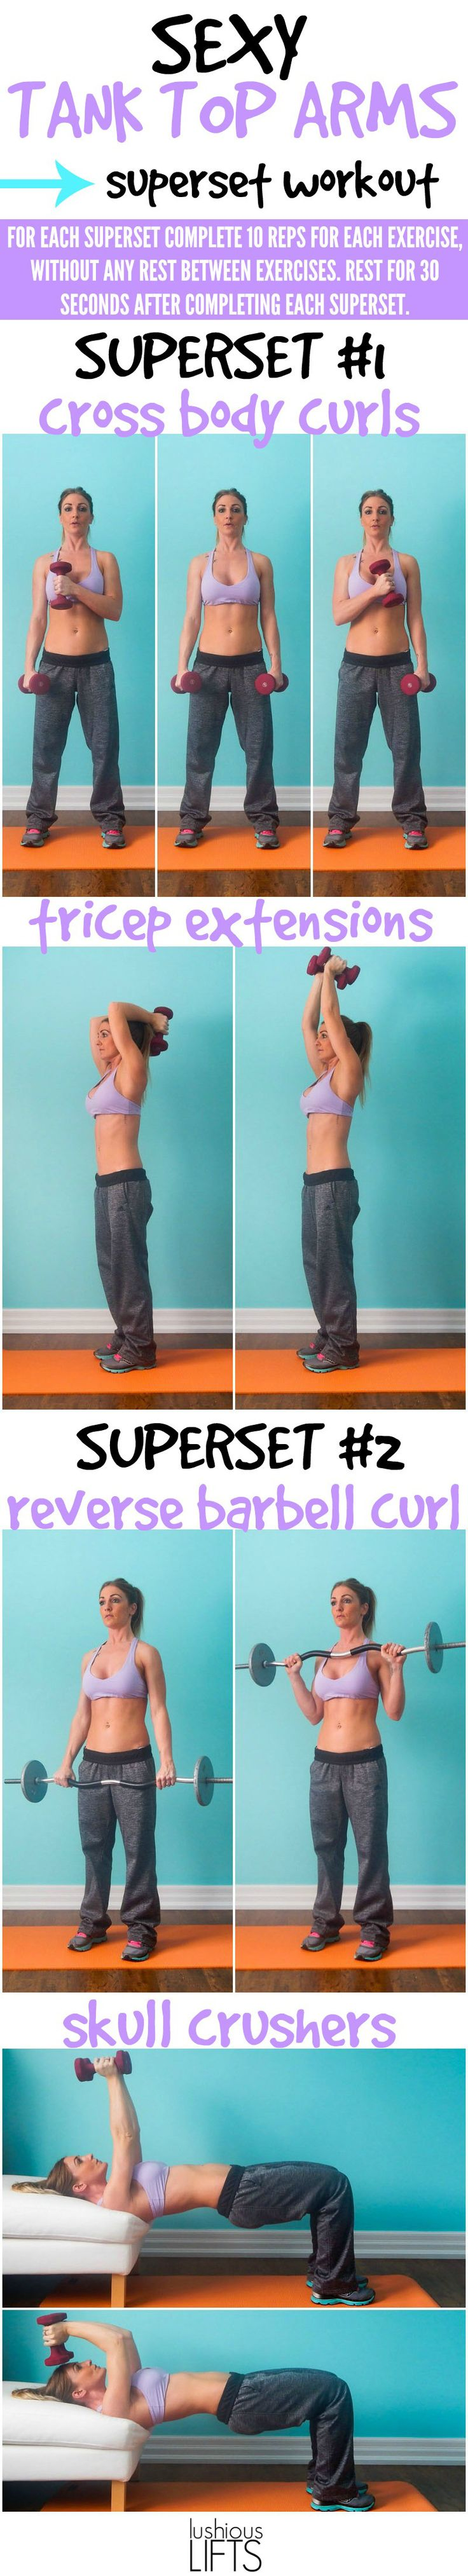 Sexy Tank Top Arms Superset Workout; because every girl wants to get rid of those chicken wings!! #fatblast